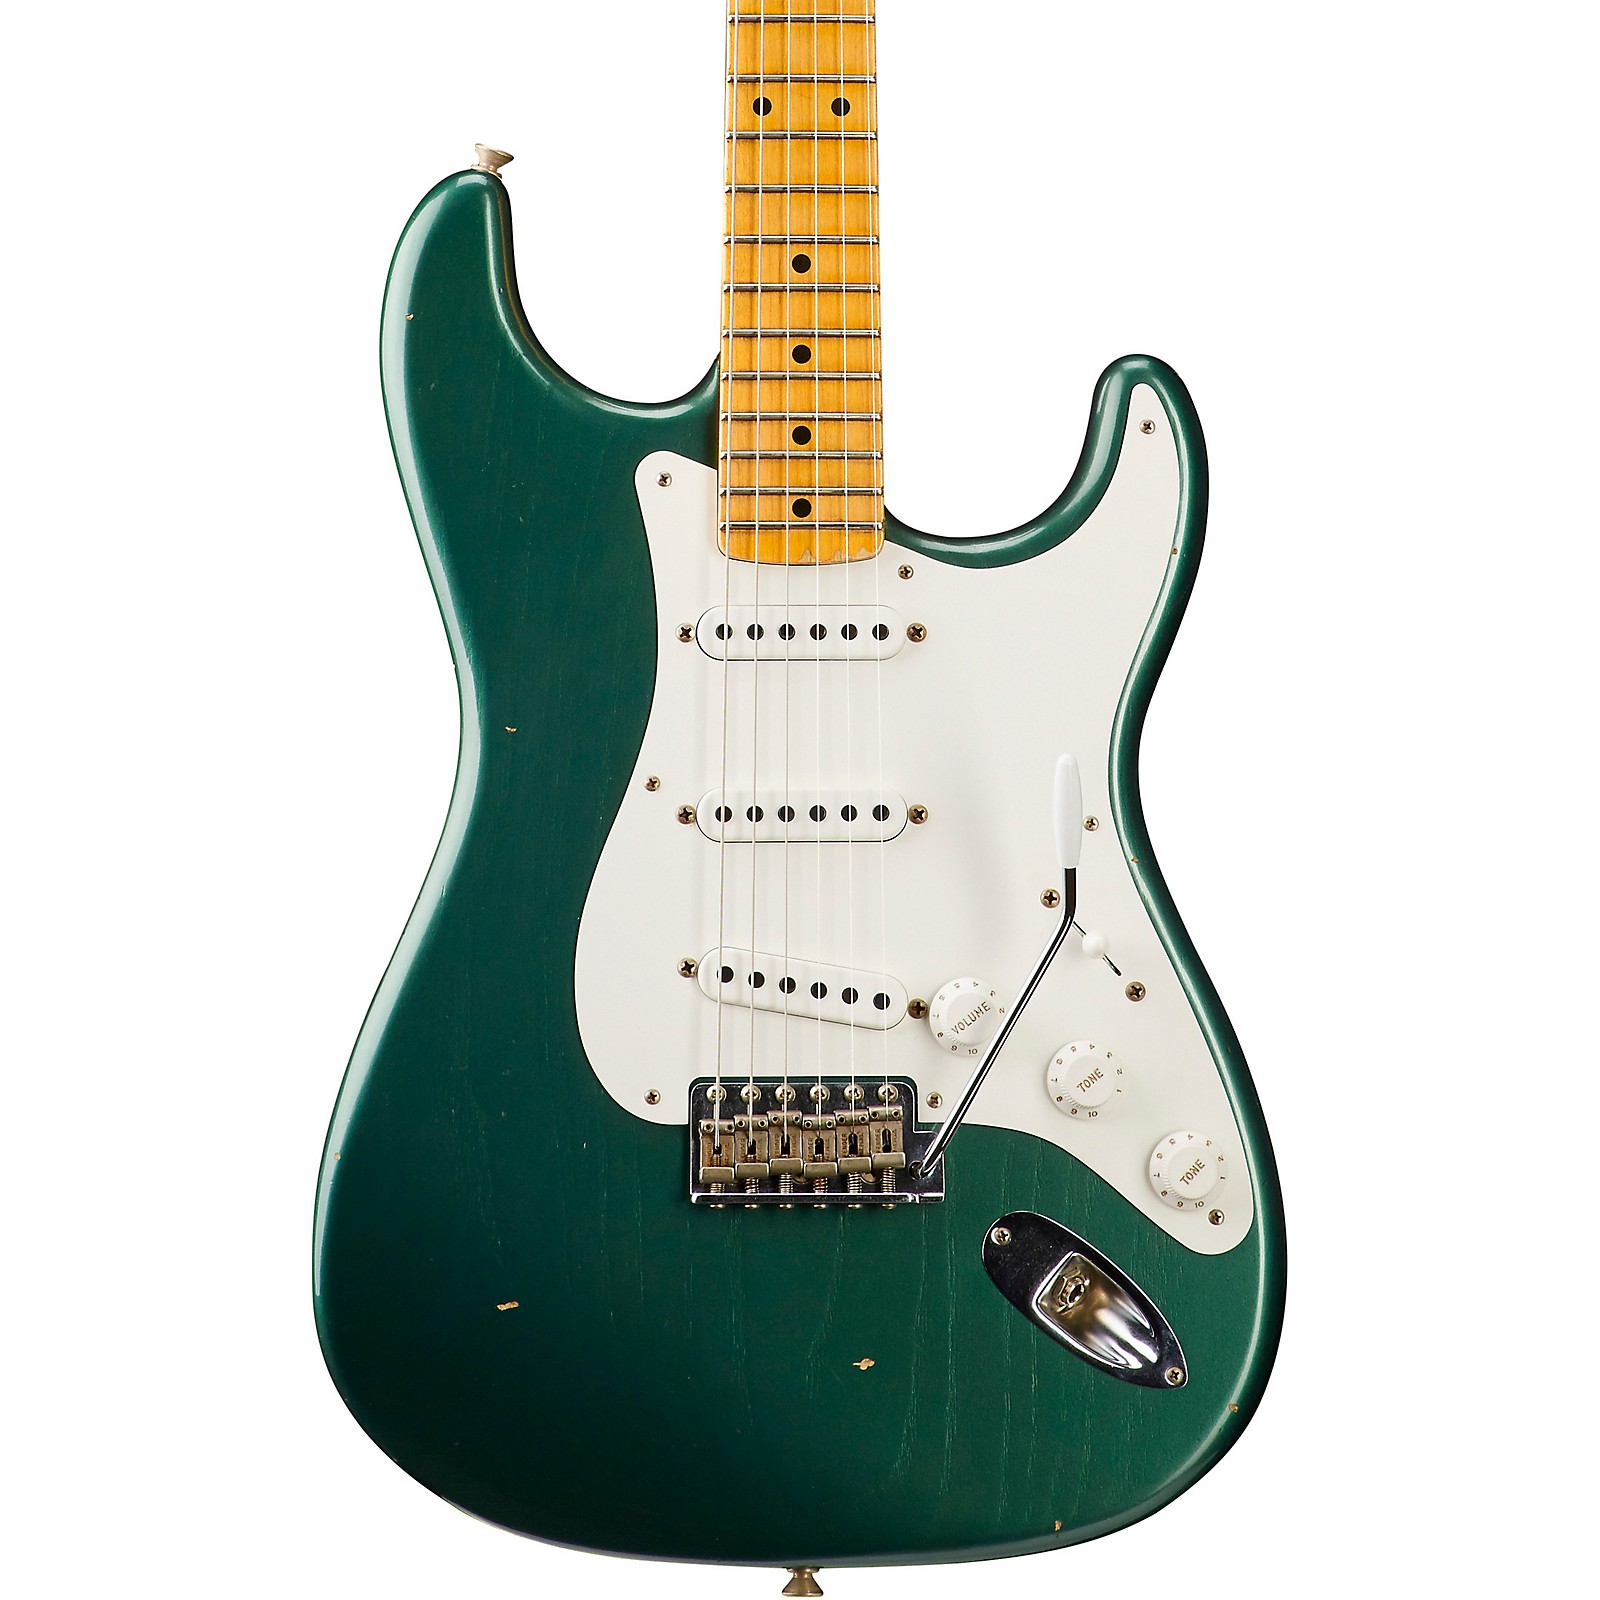 Fender Custom Shop 1955 Journeyman Relic Stratocaster - Custom Built - NAMM Limited Edition